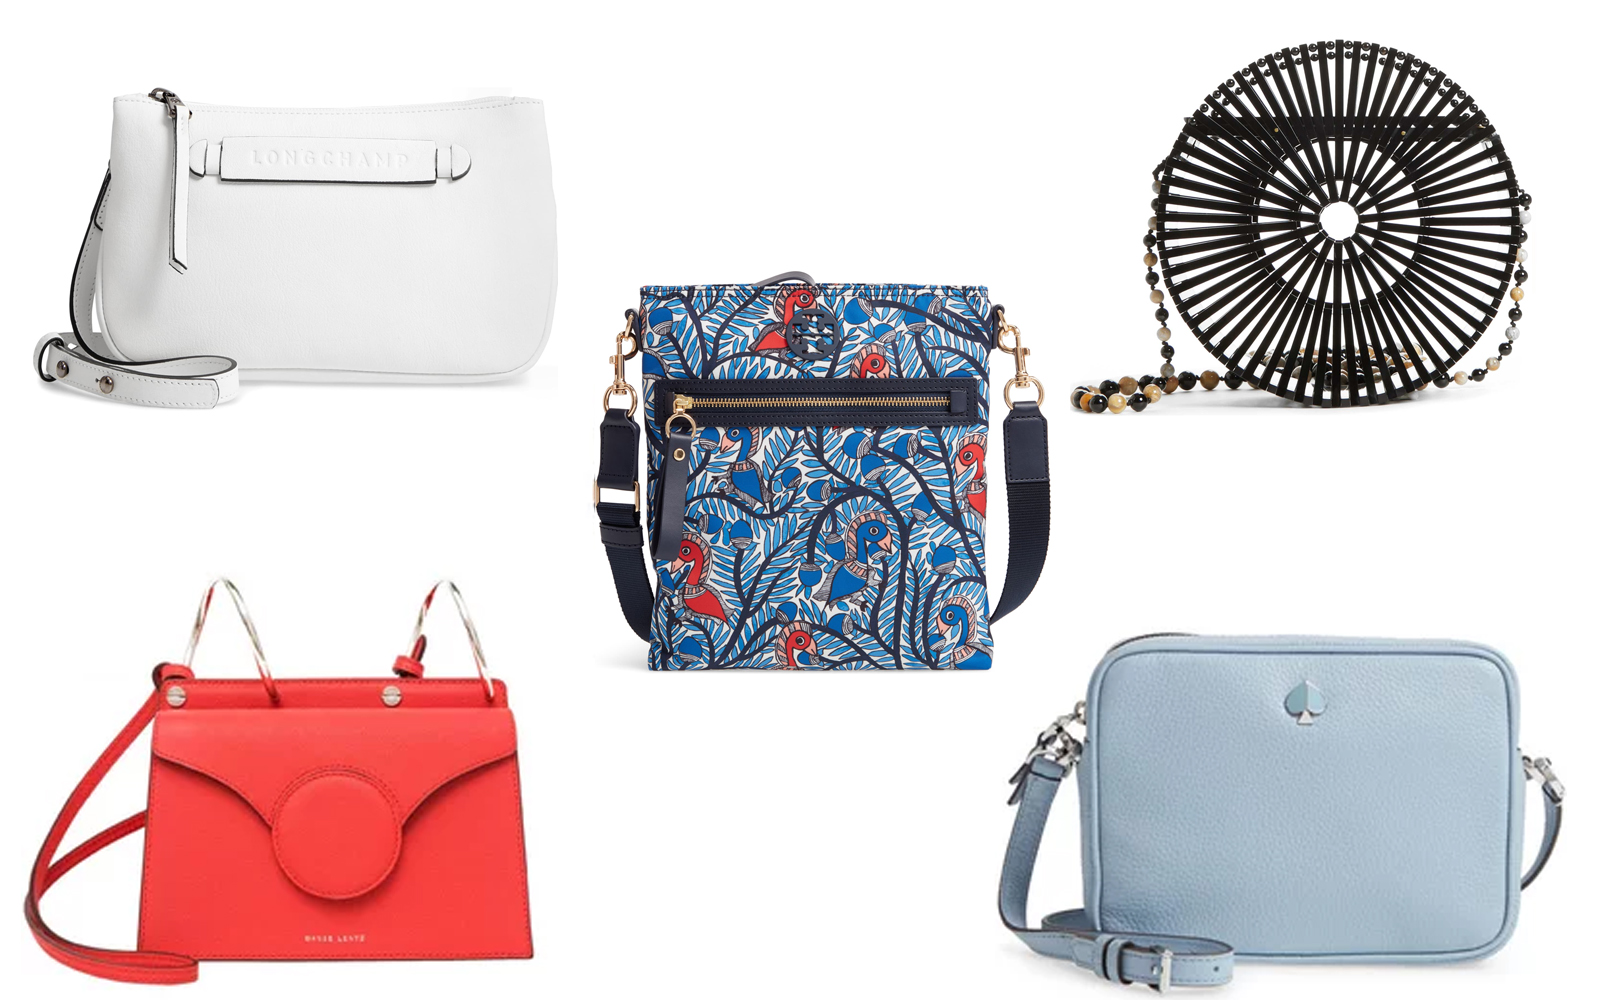 6 Best Cross-body Bags to Shop at Nordstrom's Half-Yearly Sale